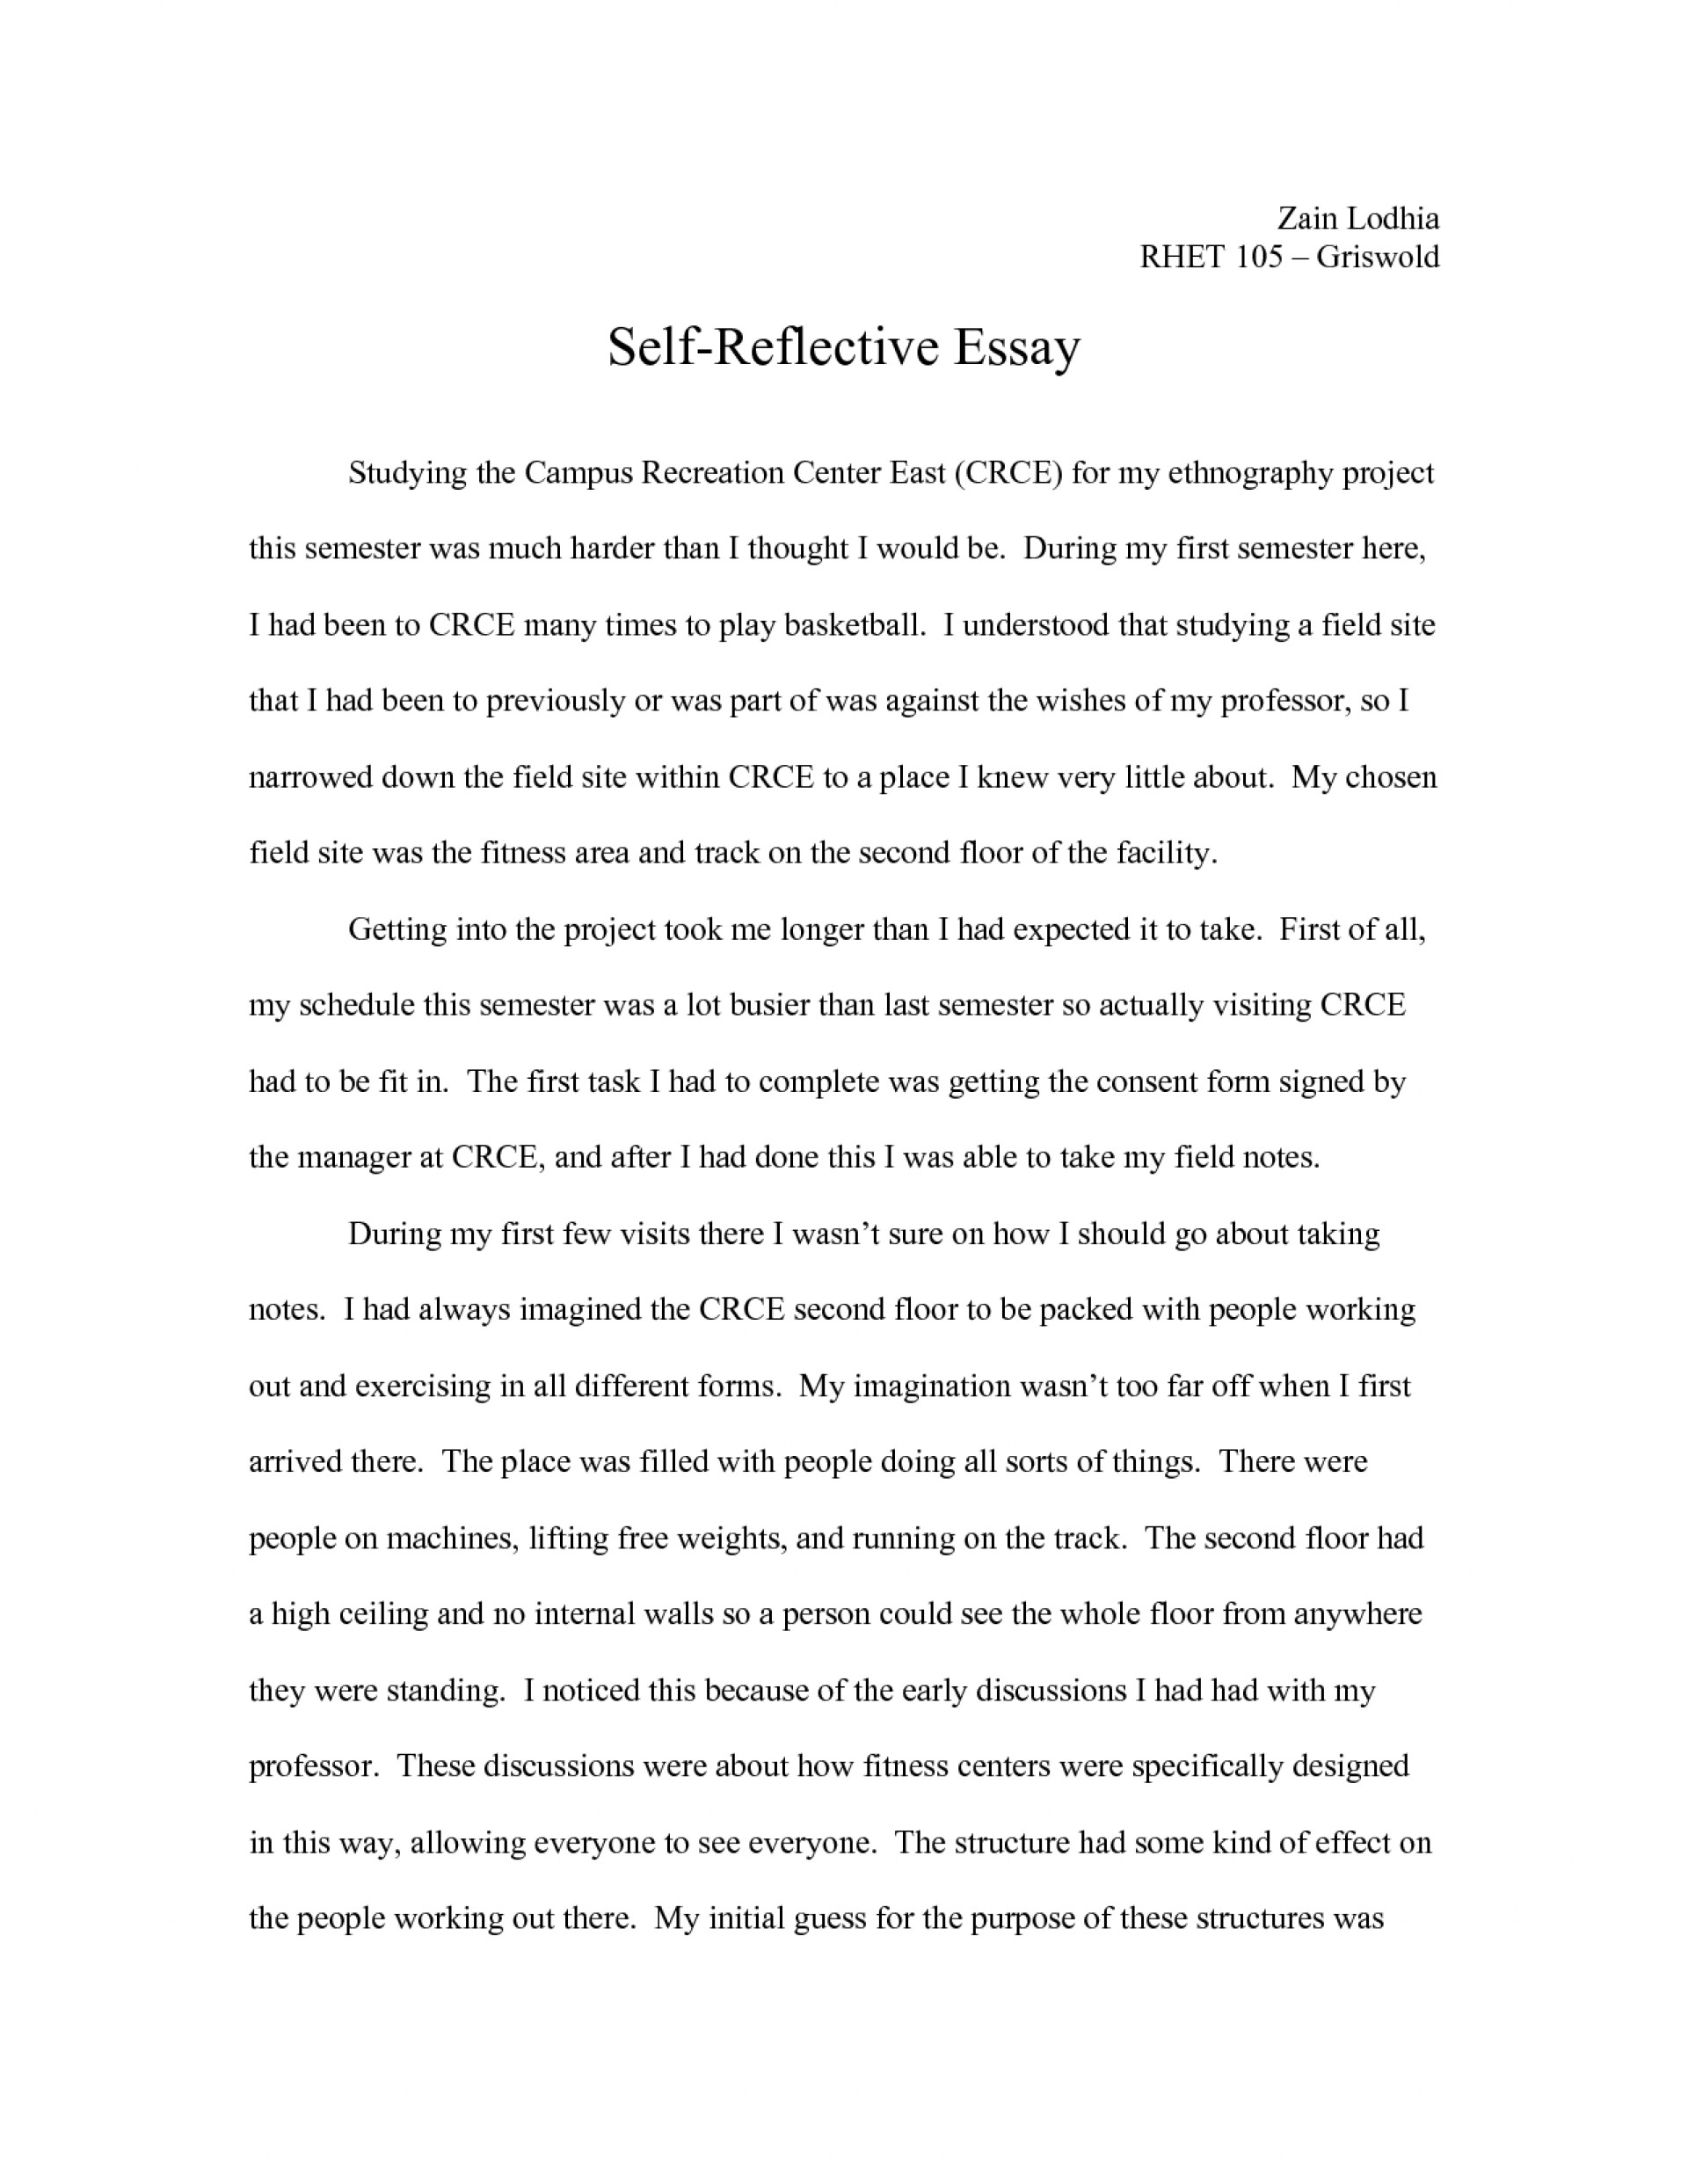 003 Reflective Essay Format Qal0pwnf46 Phenomenal Self Assessment Example Reflection Paper Apa 1920